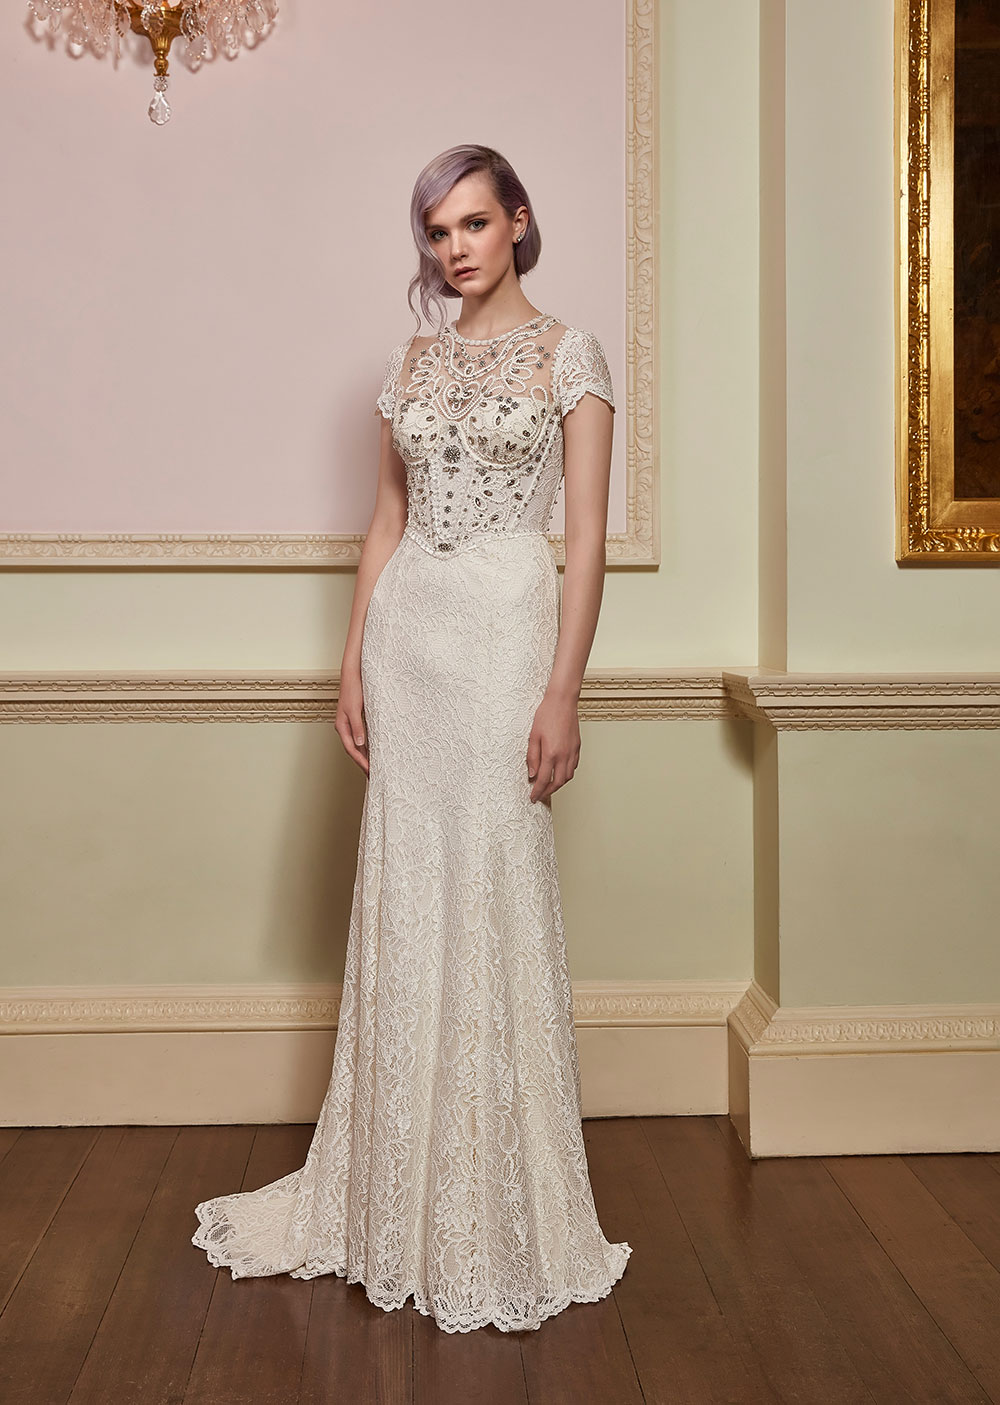 Delicia & Valentine - Jenny Packham 2018 Bridal Collection. www.theweddingnotebook.com